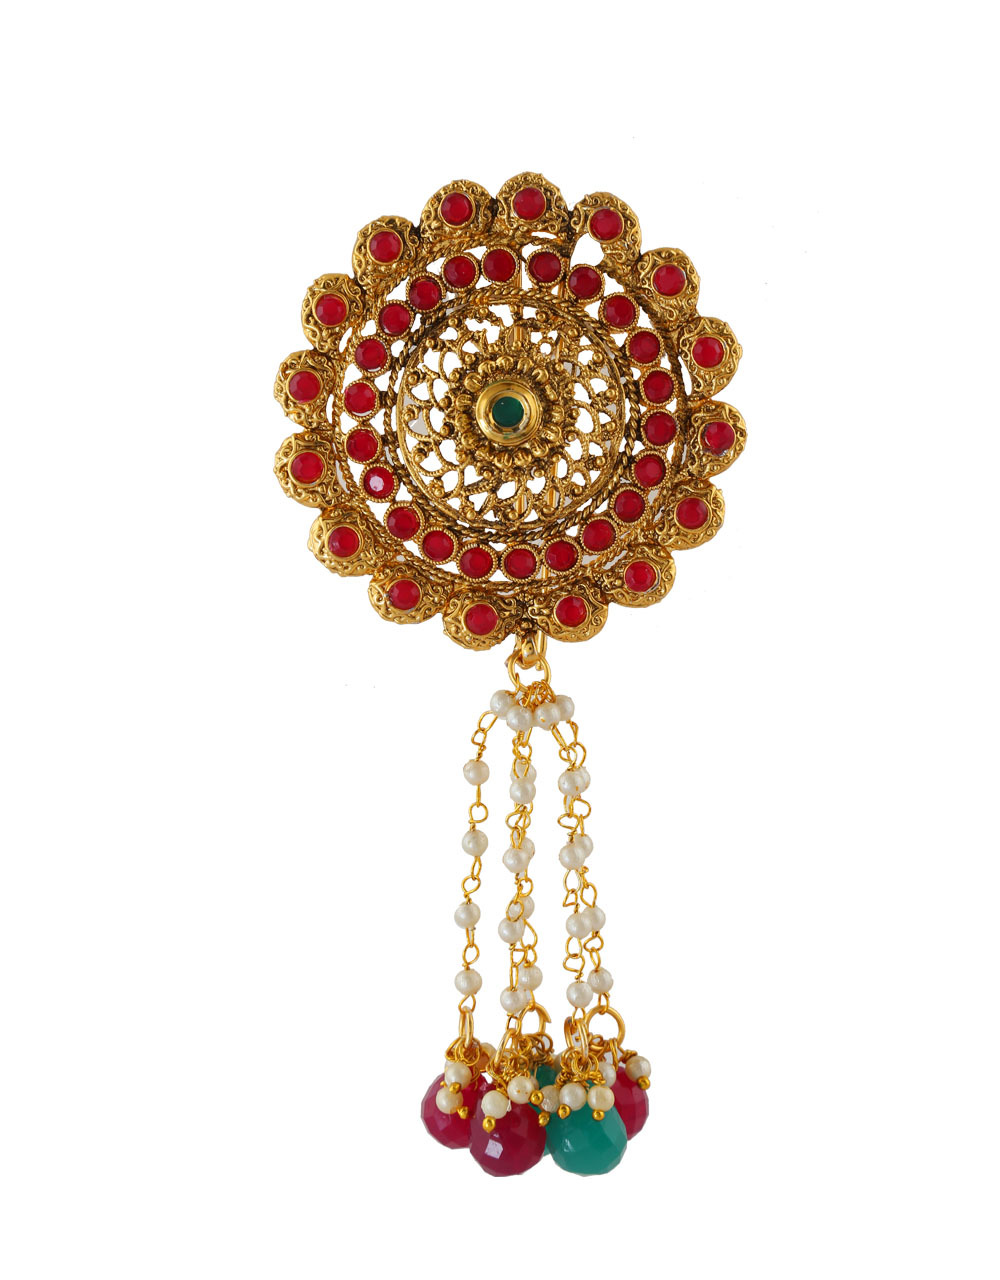 Red Colour Gold Finish Hair Pin Accessories